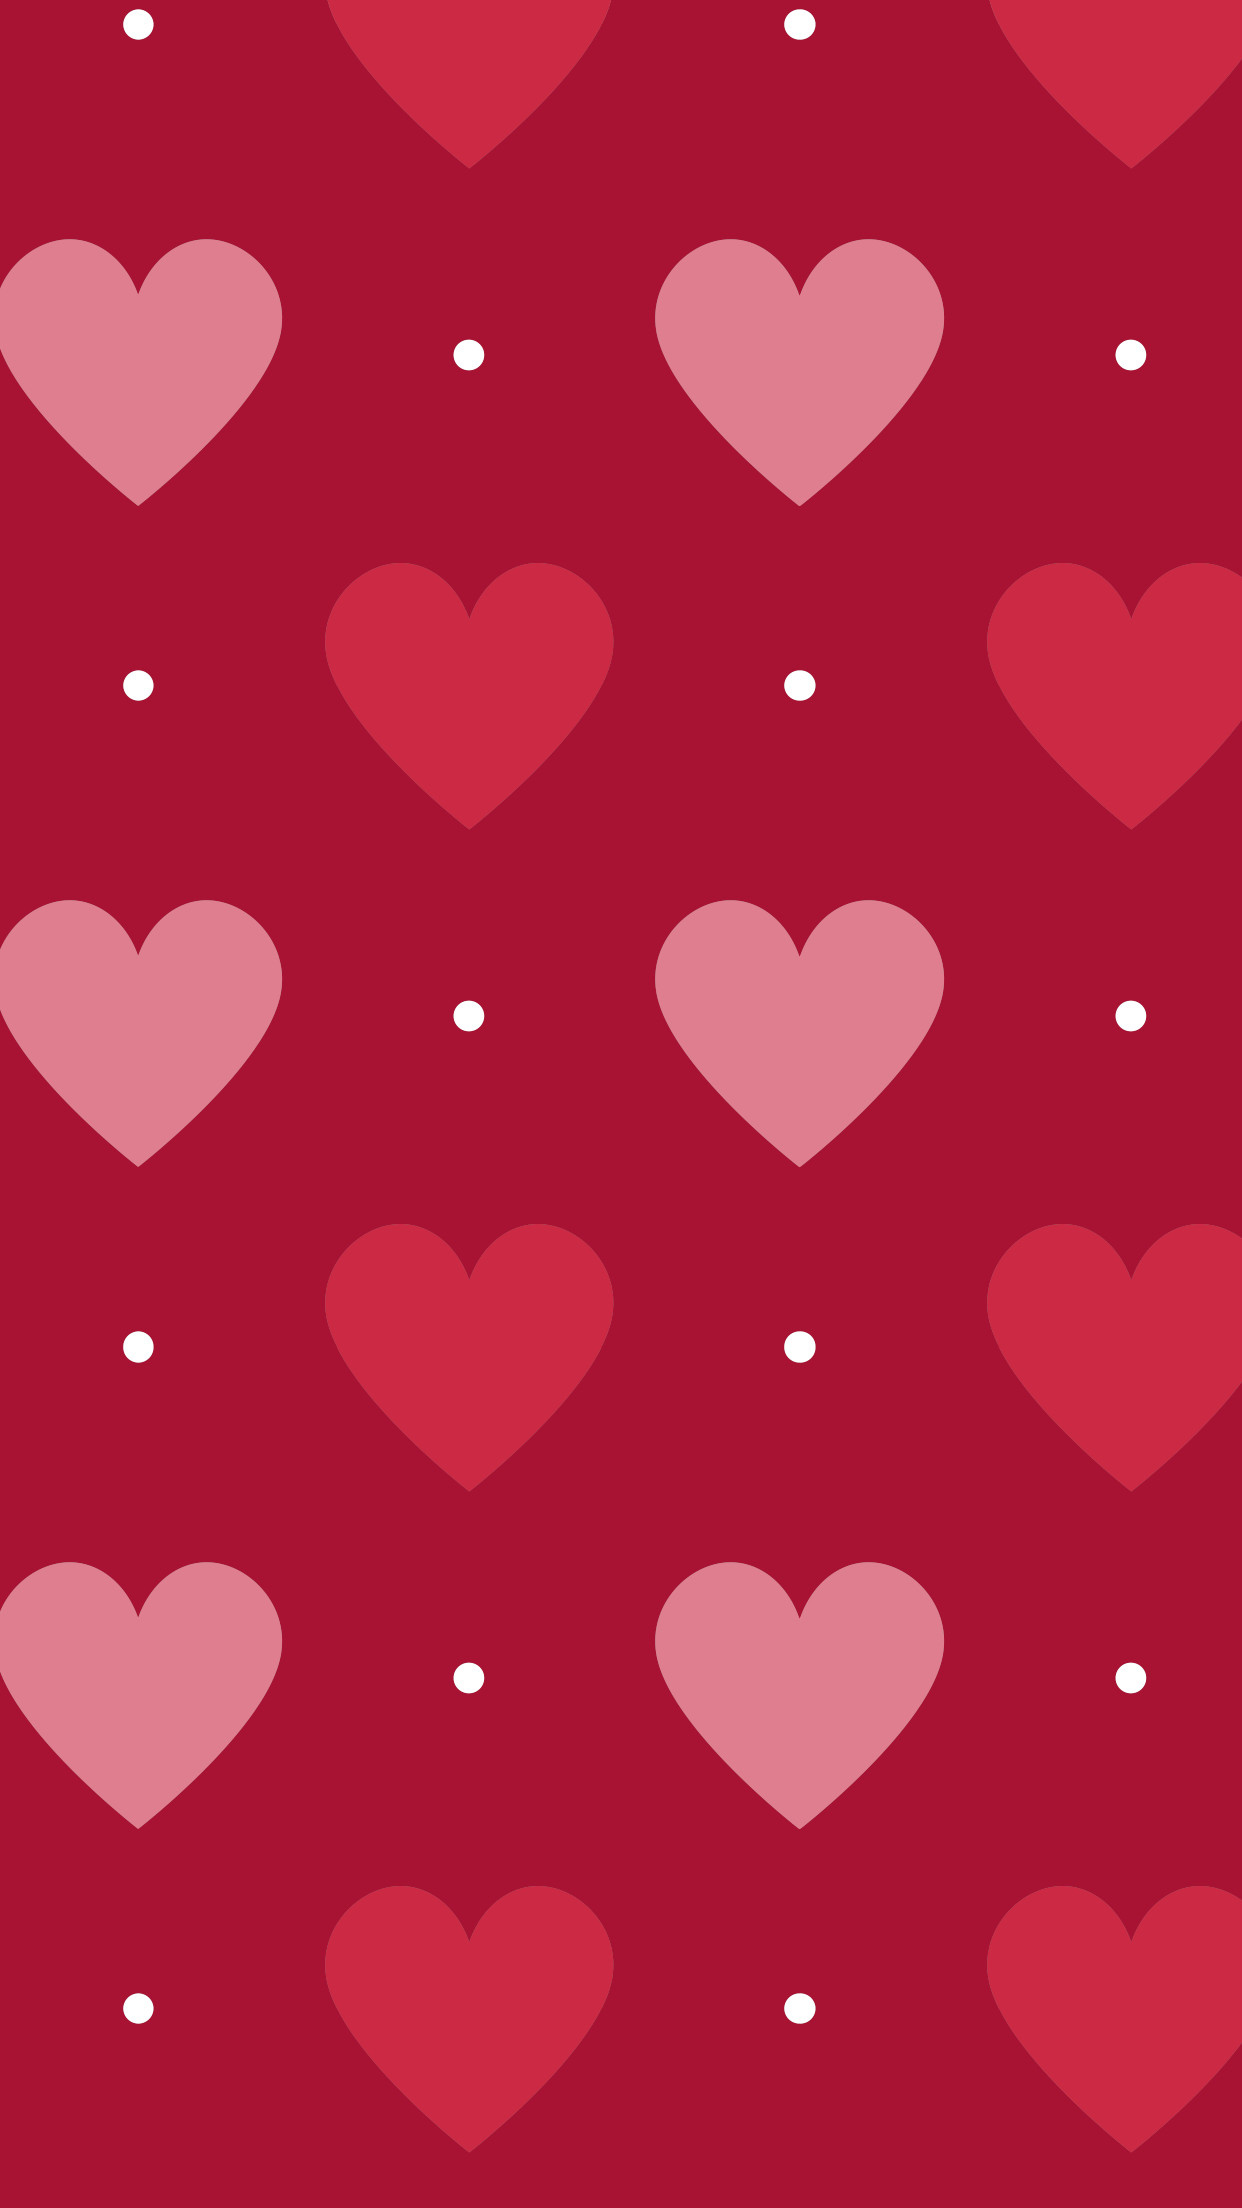 Colorful Hearts Wallpaper 66 Images